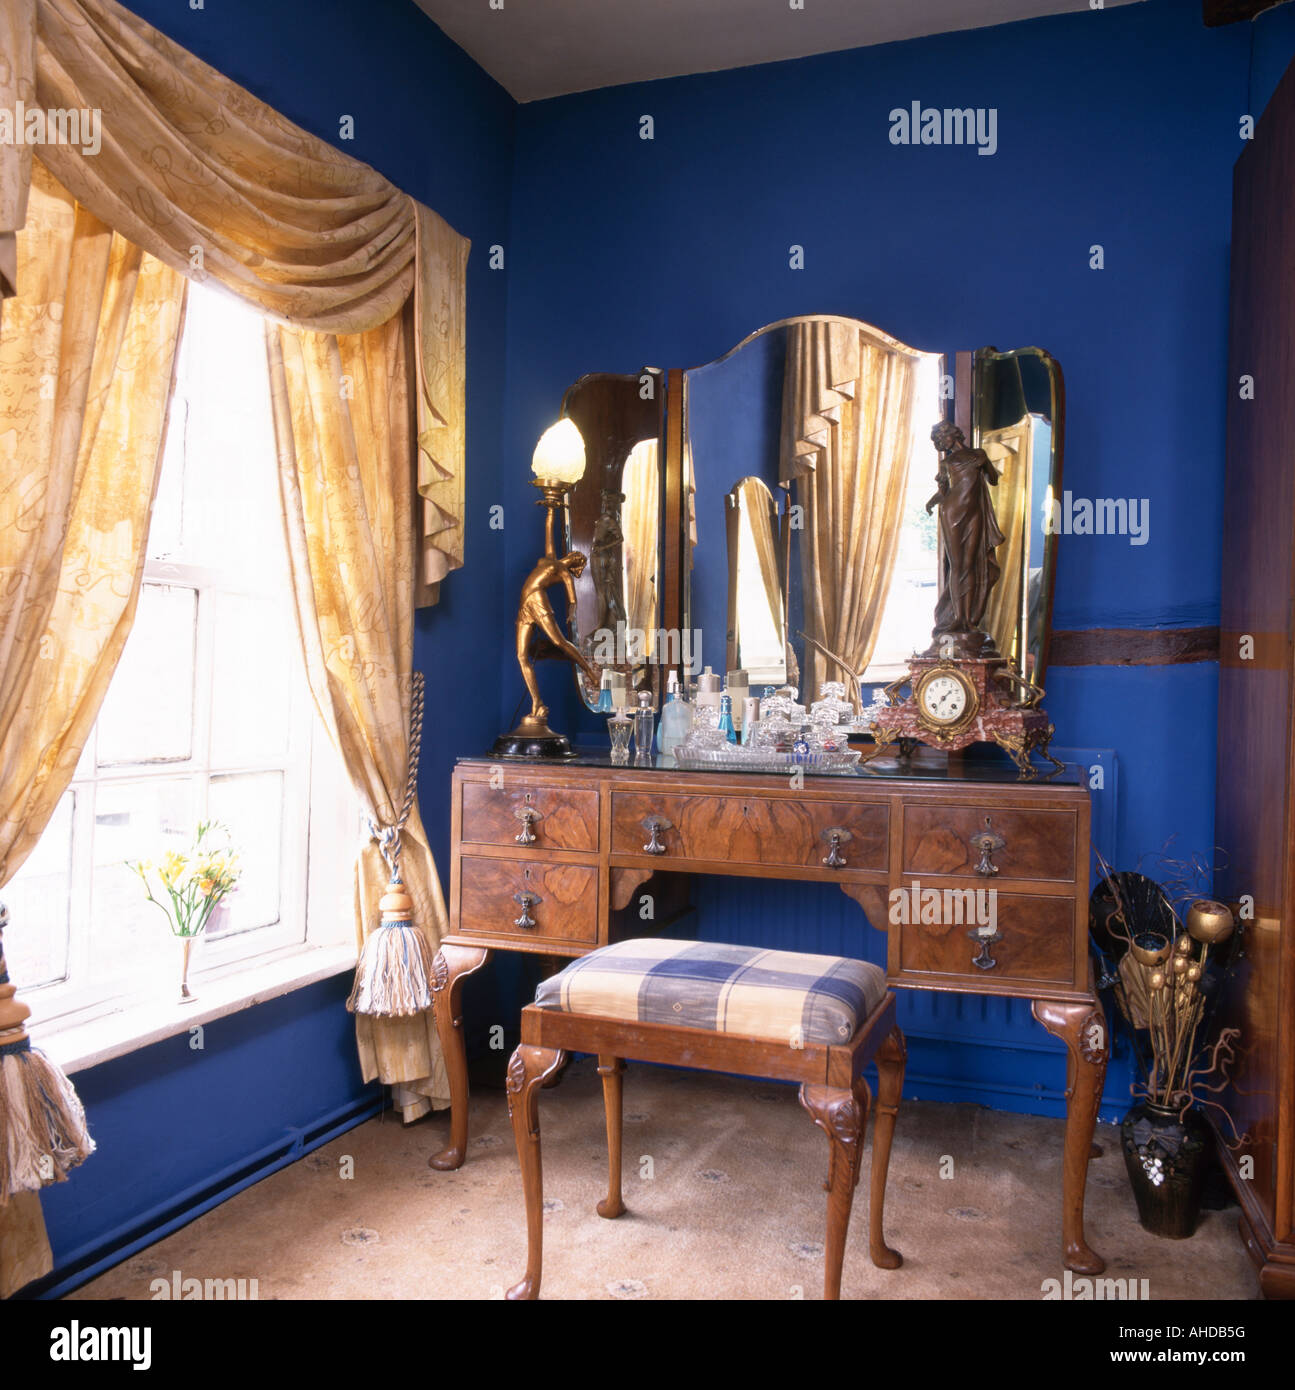 Antique dressing table with mirror - Antique Dressing Table With Triple Mirror In Blue Eighties Bedroom With Swagged And Tailed Curtains